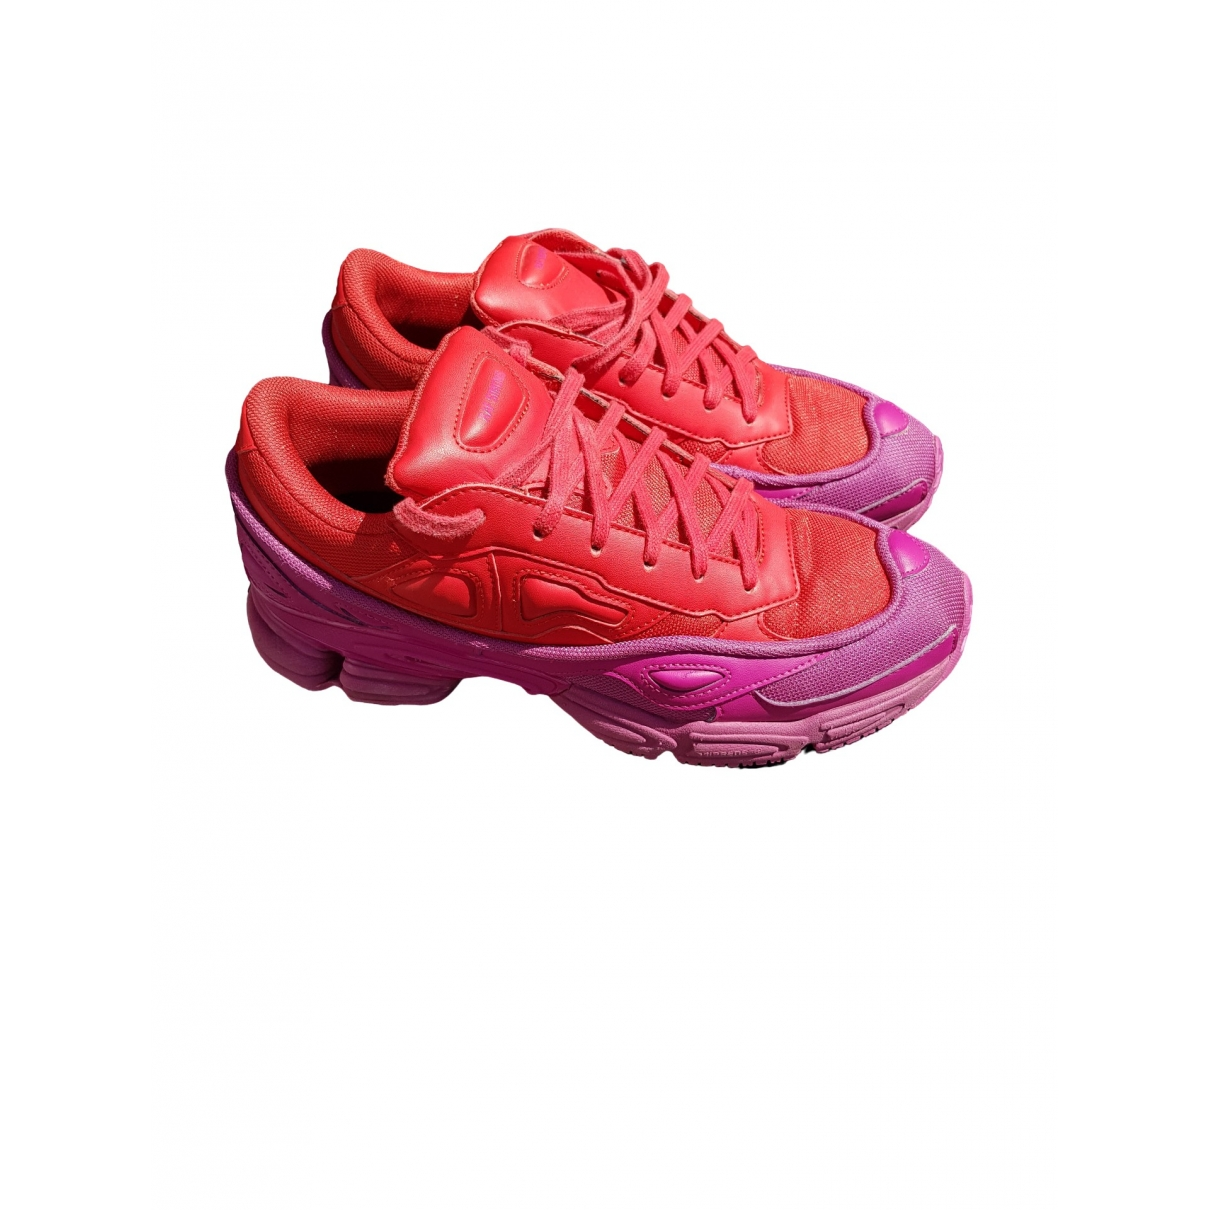 Adidas X Raf Simons Ozweego 2 Red Leather Trainers for Men 43 EU